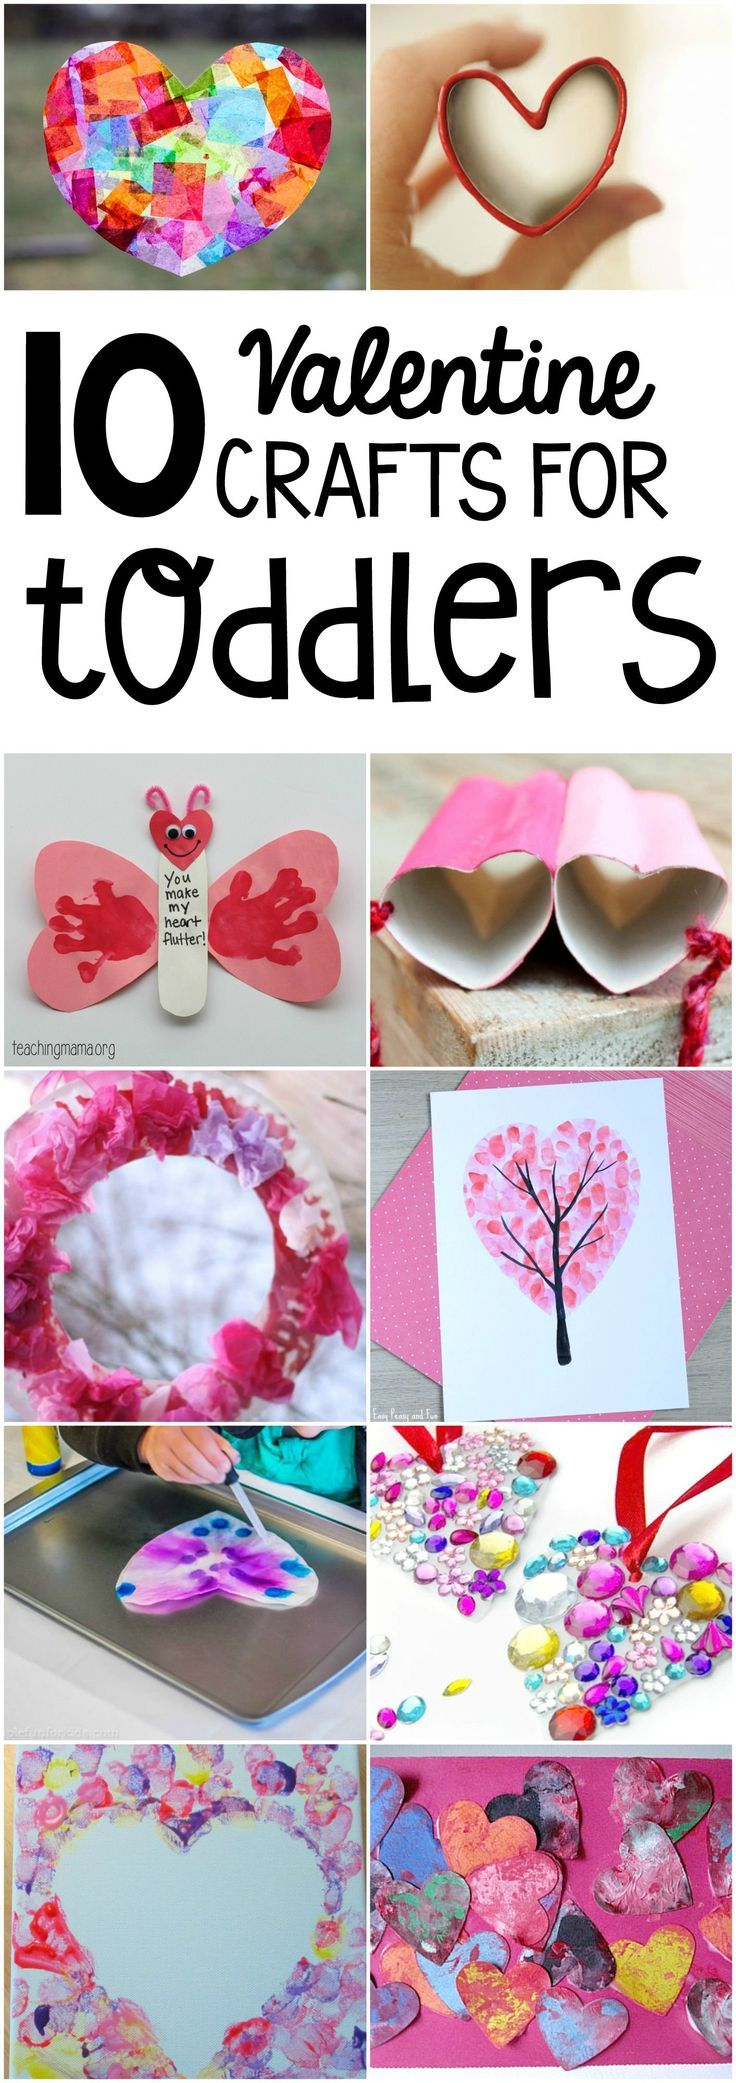 10 Valentine Crafts for toddlers! A roundup of gorgeous crafts and art for kids to do this winter around Valentine's Day! #ValentinesDay #toddlercrafts